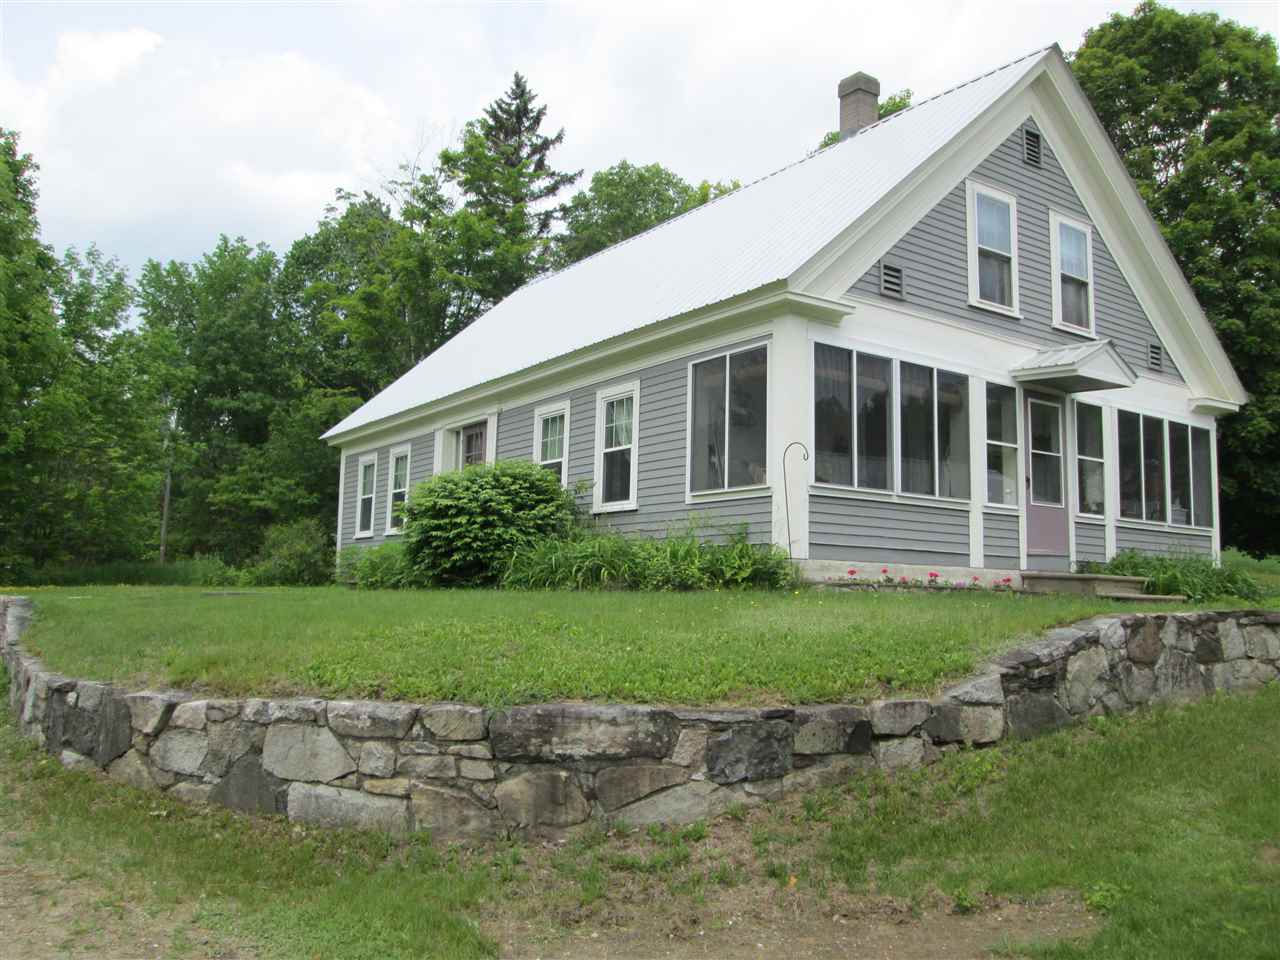 WEATHERSFIELD VTHomes for sale